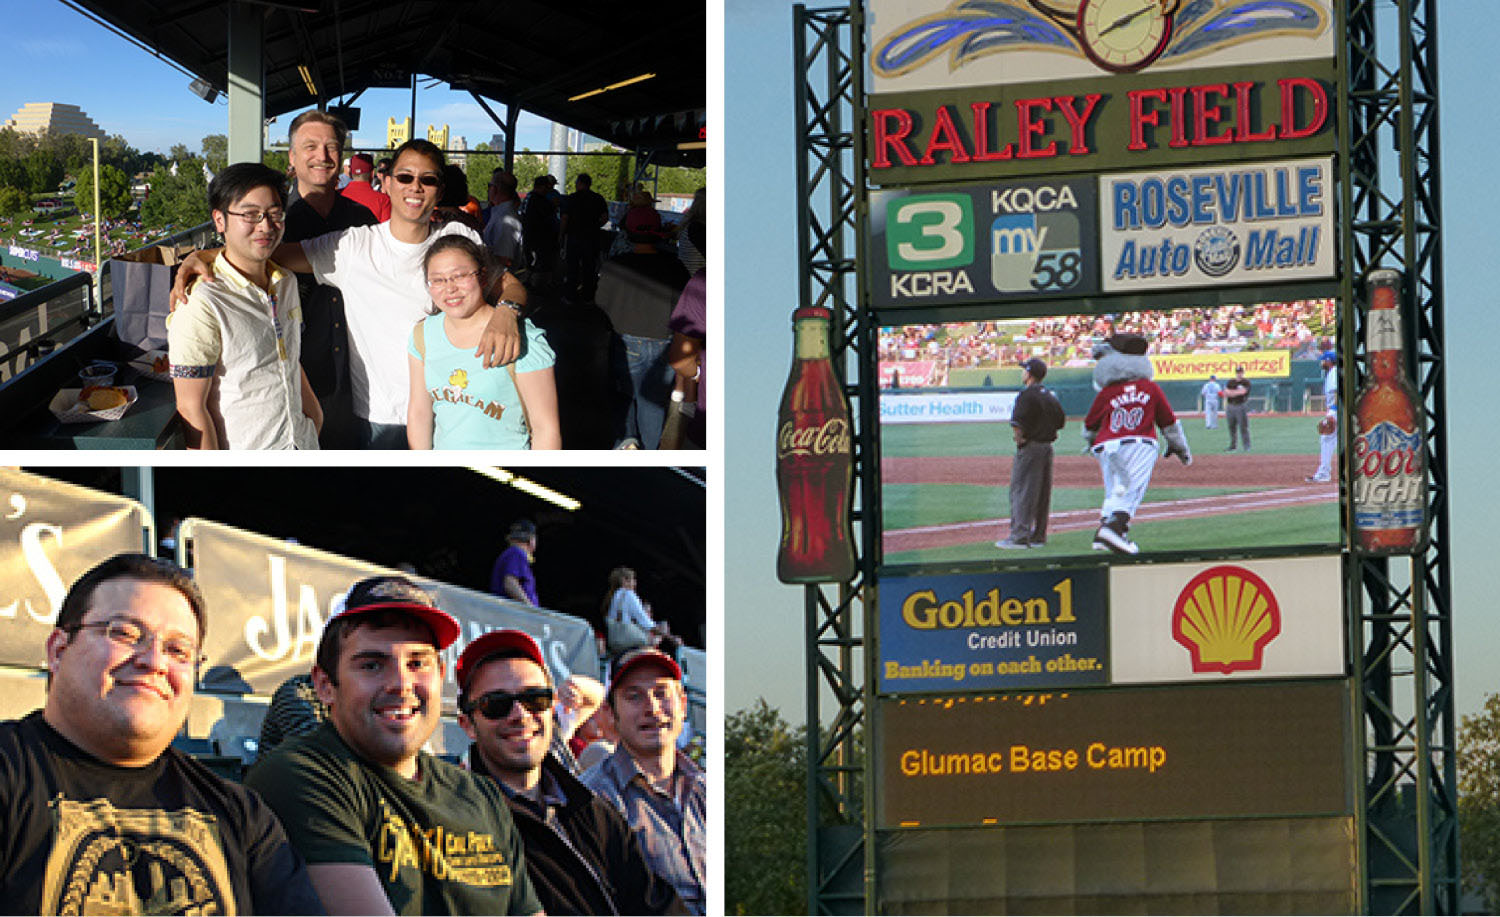 Taking in the excitement at the River Cats baseball game. Glumac Base Campers recognized at the game!